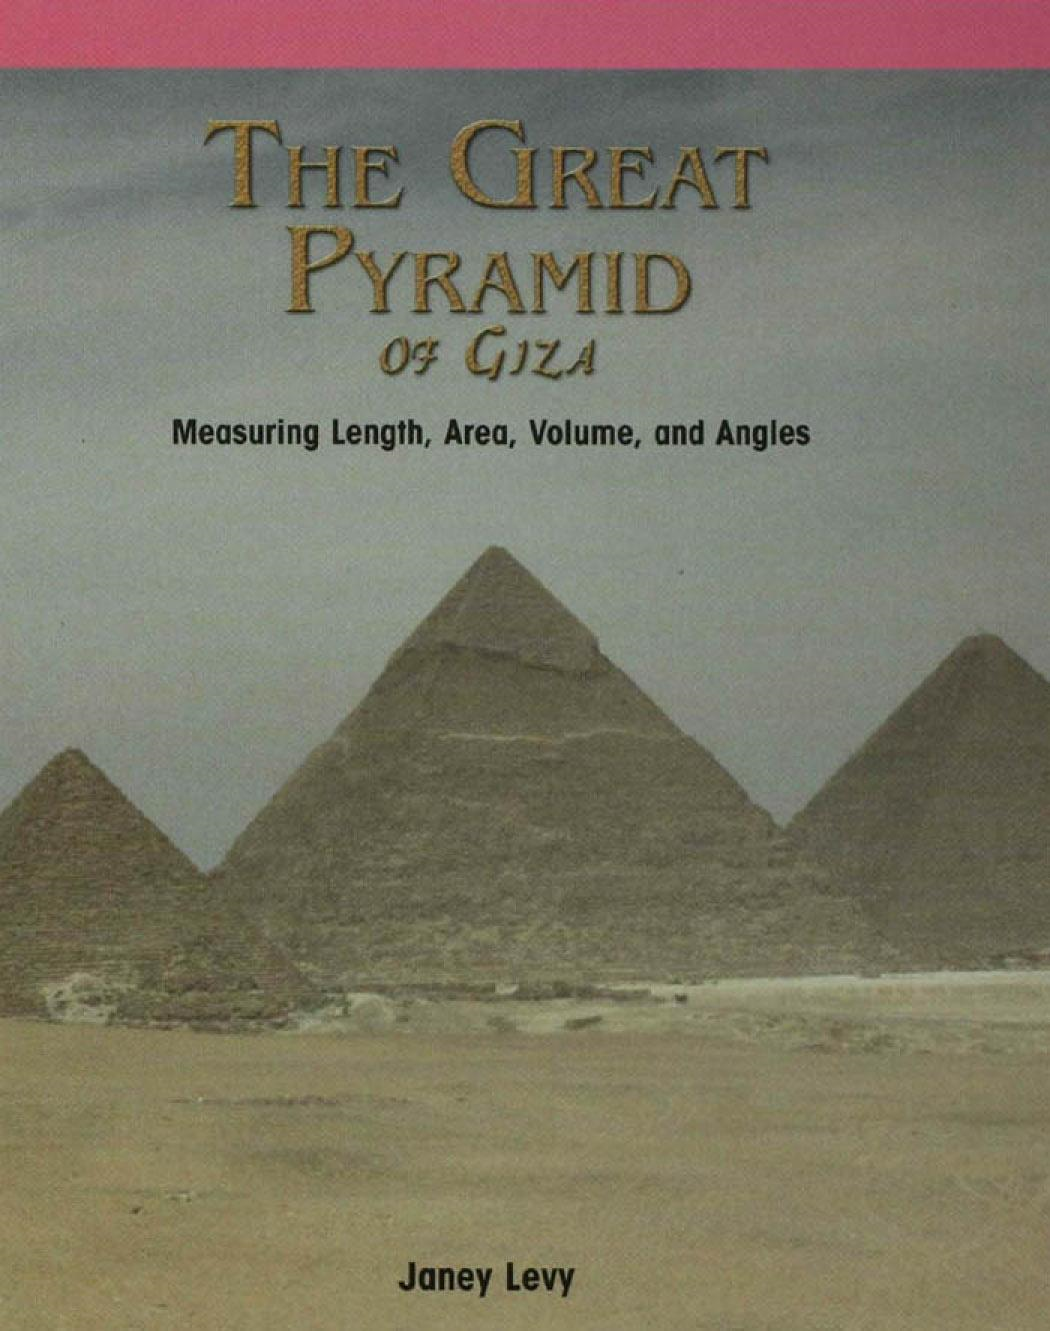 The Great Pyramid of Giza: Measuring Length, Area, Volume, and Angles